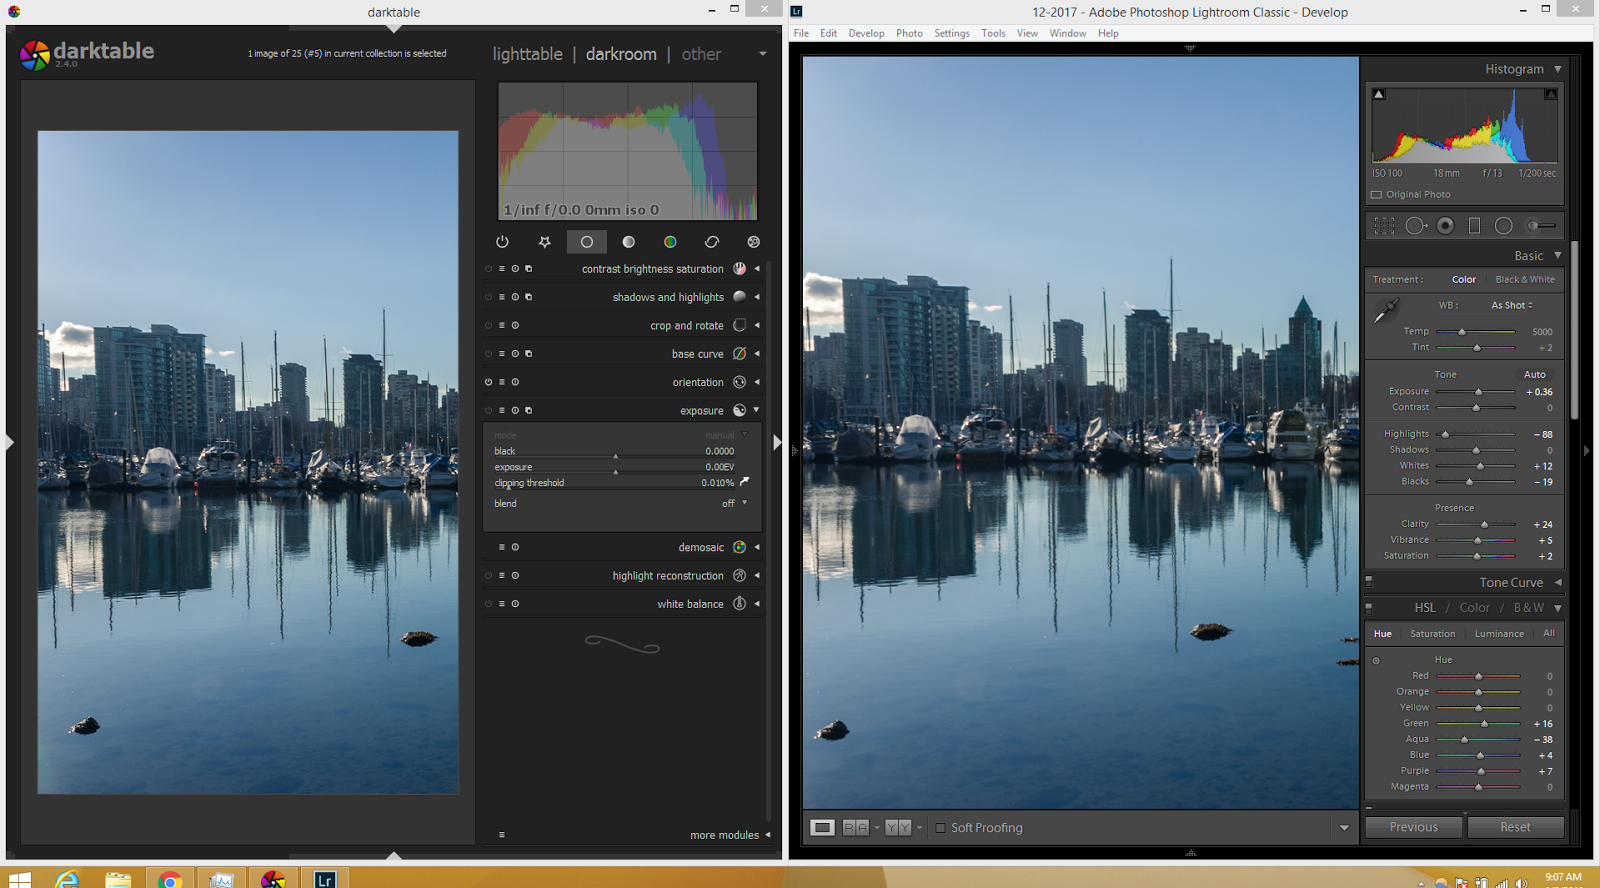 Darktable vs Adobe Lightroom Classic